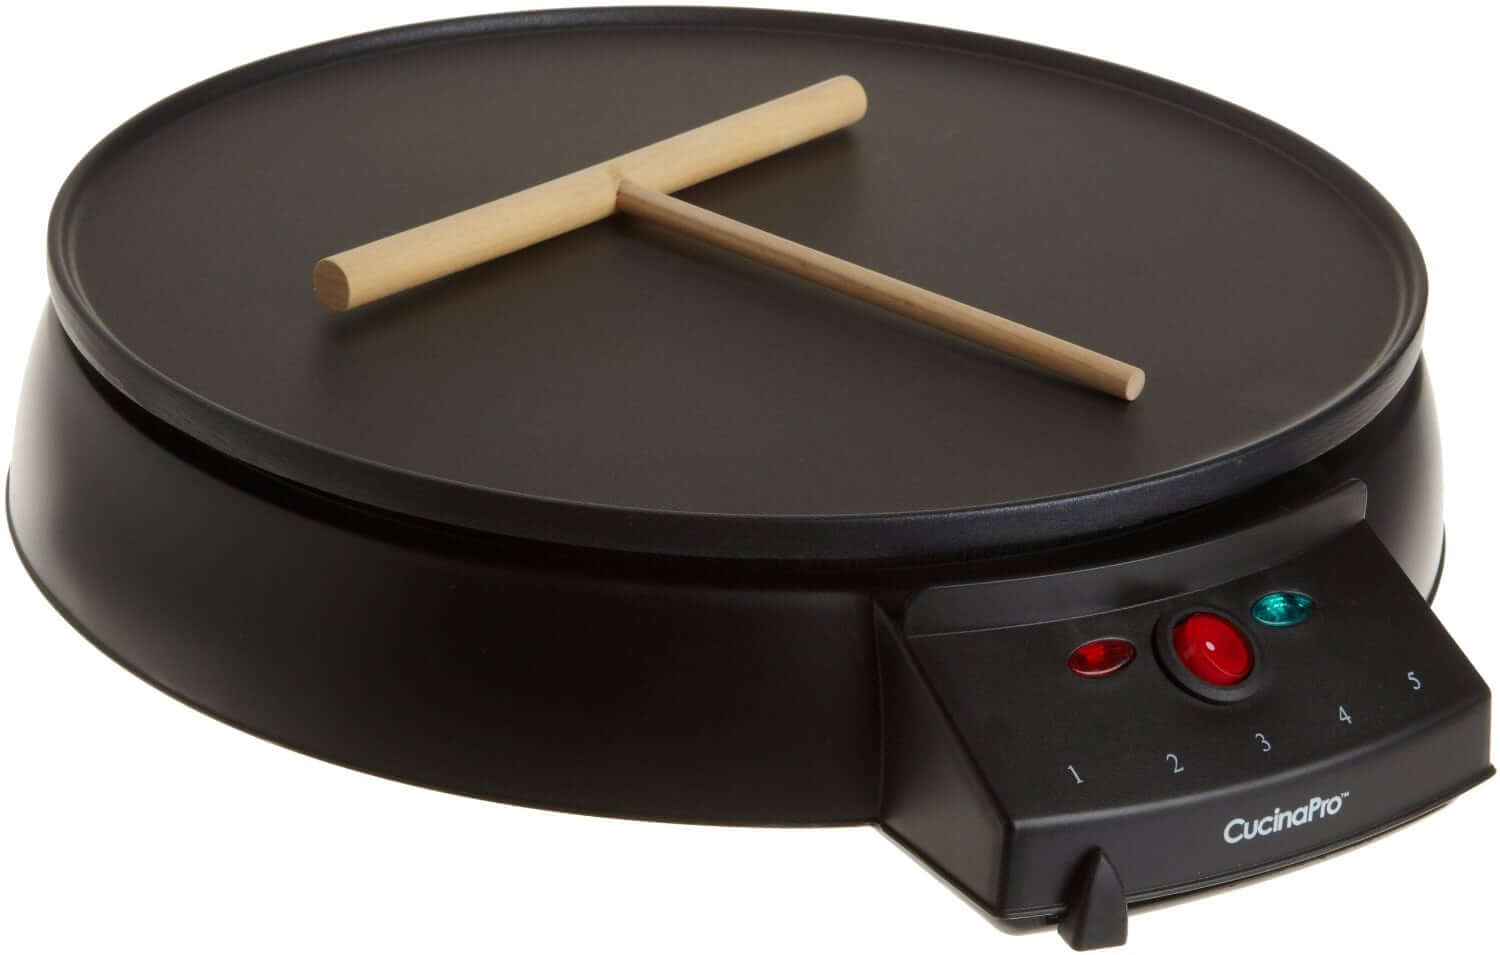 Best Crepe Maker - What to Consider When Purchasing - The Bread Guru